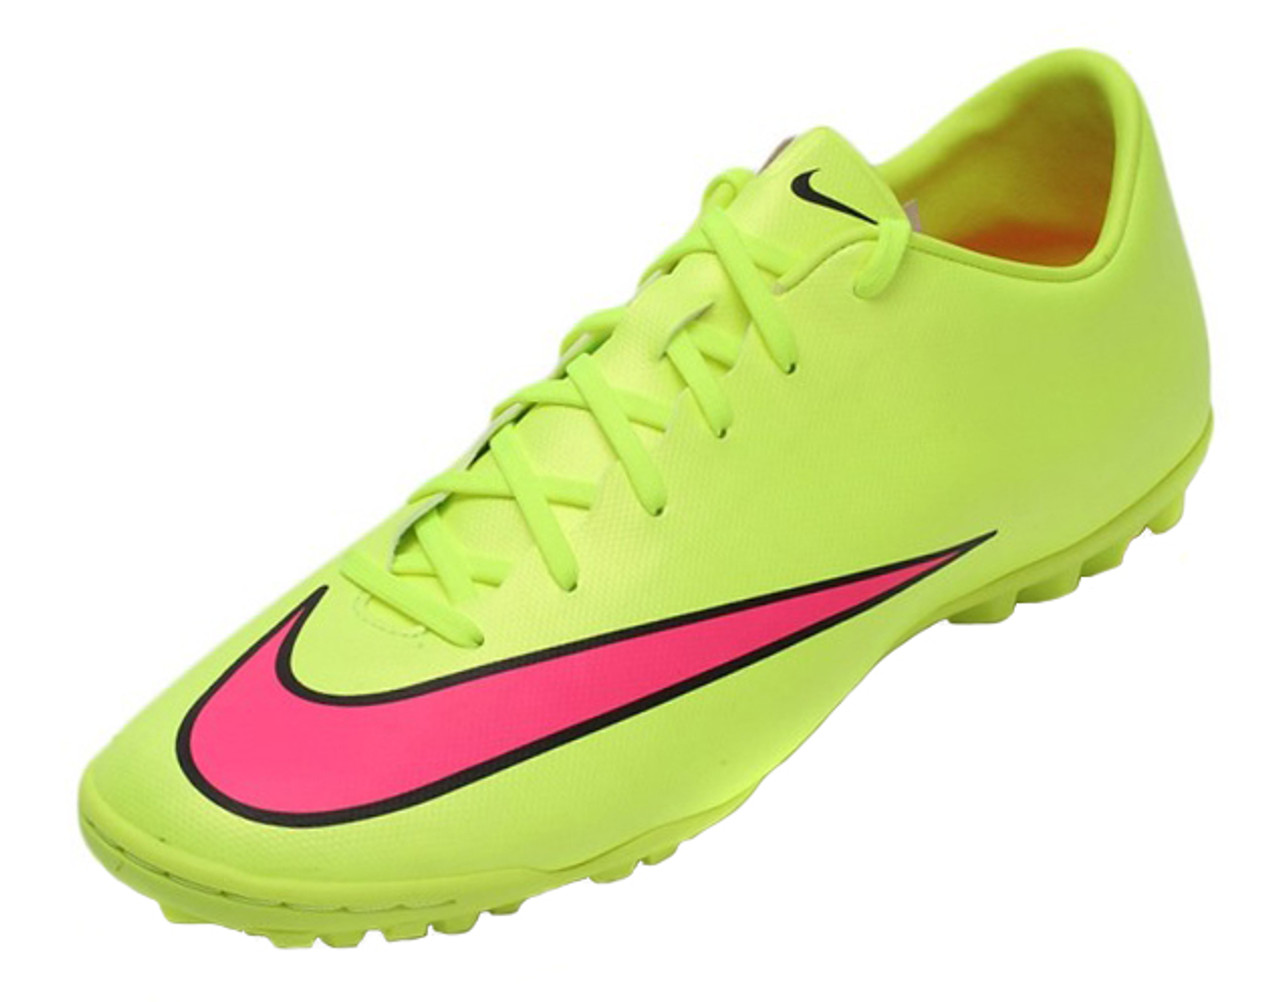 promo code ee3b0 36db5 Nike Mercurial Victory V TF - Volt/Hyper Pink SD (052519)